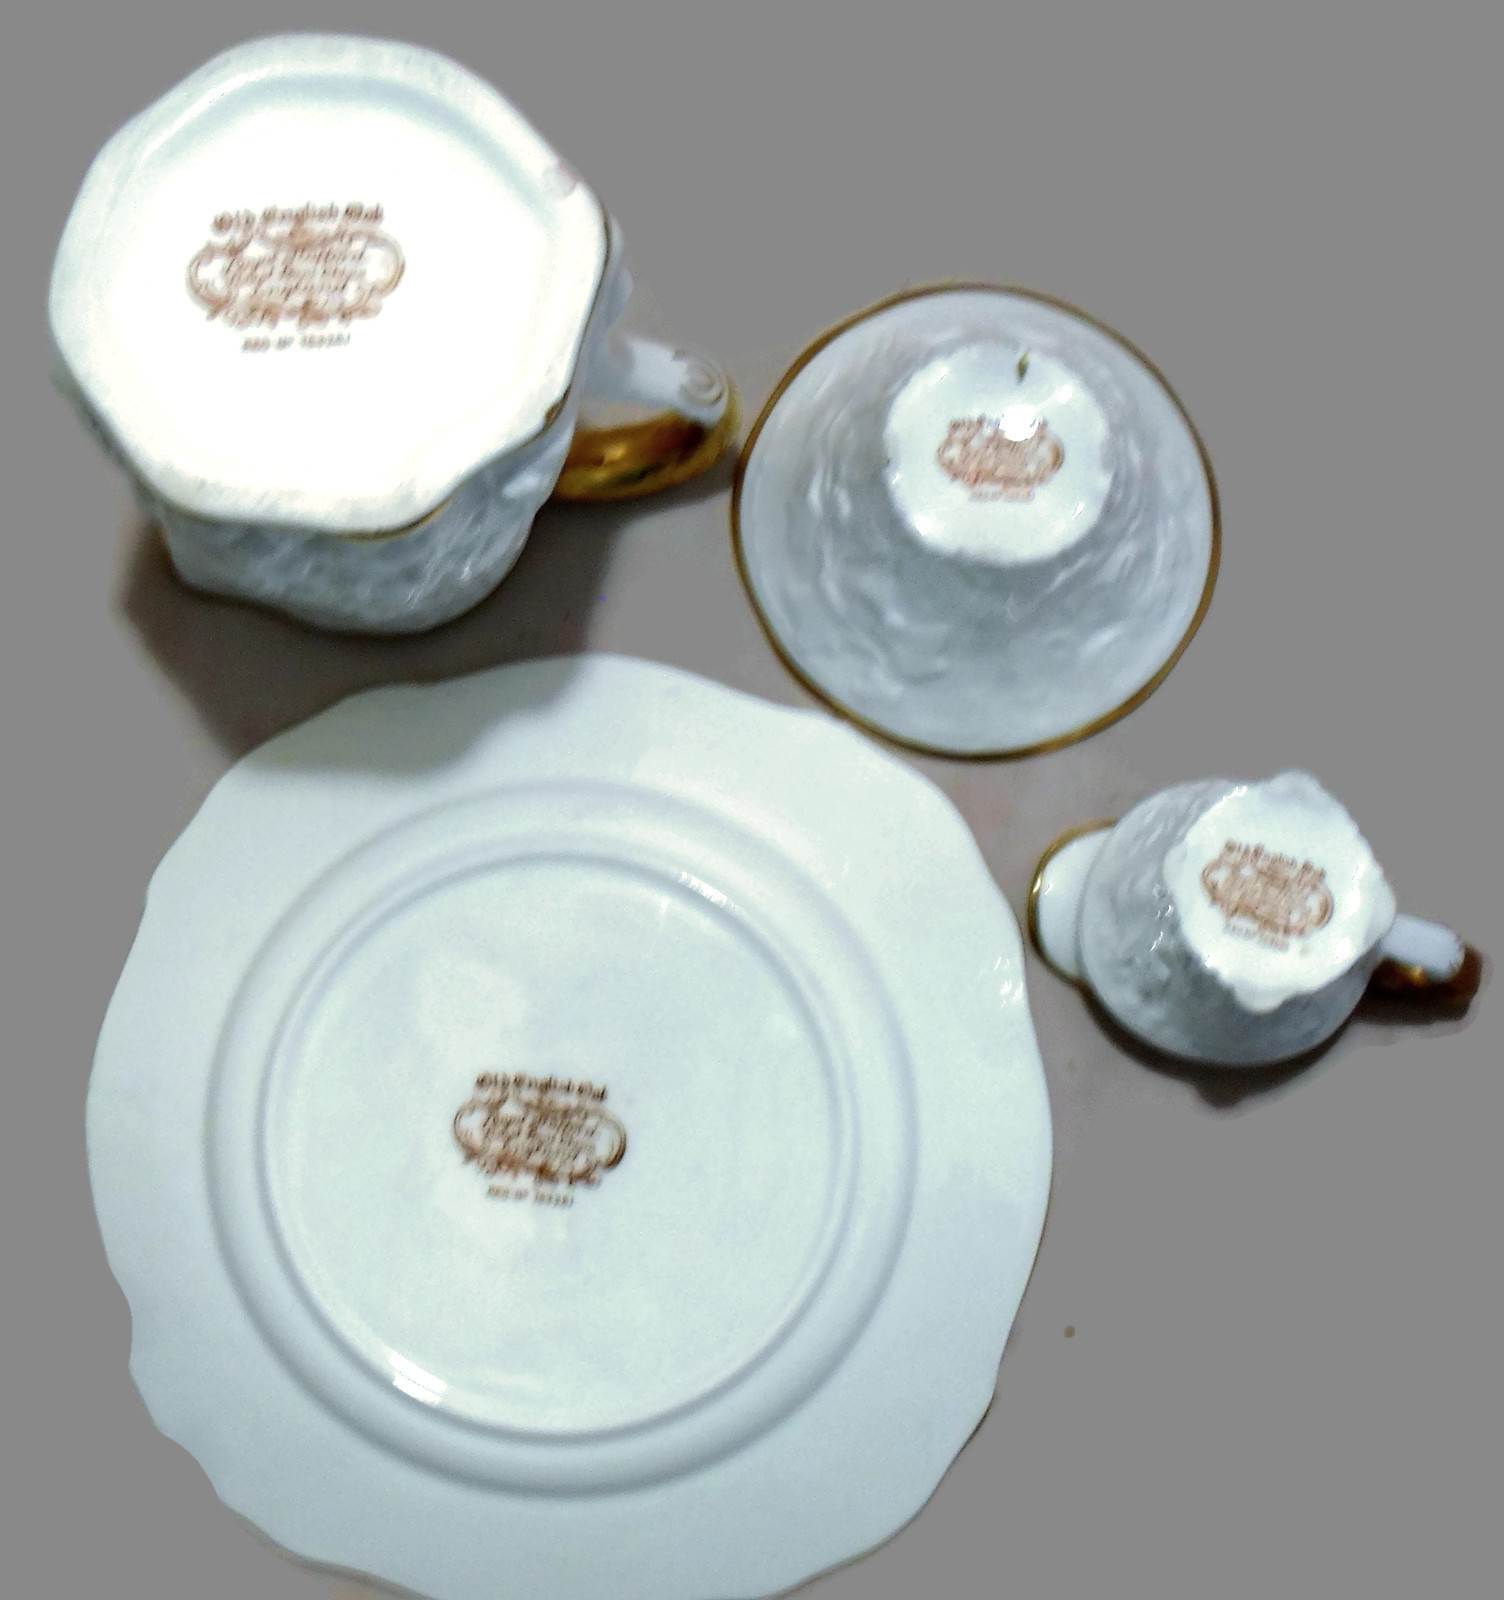 ... Royal Stafford Antique Bone China Old English Oak England & Royal Stafford Antique Bone China Old and 9 similar items